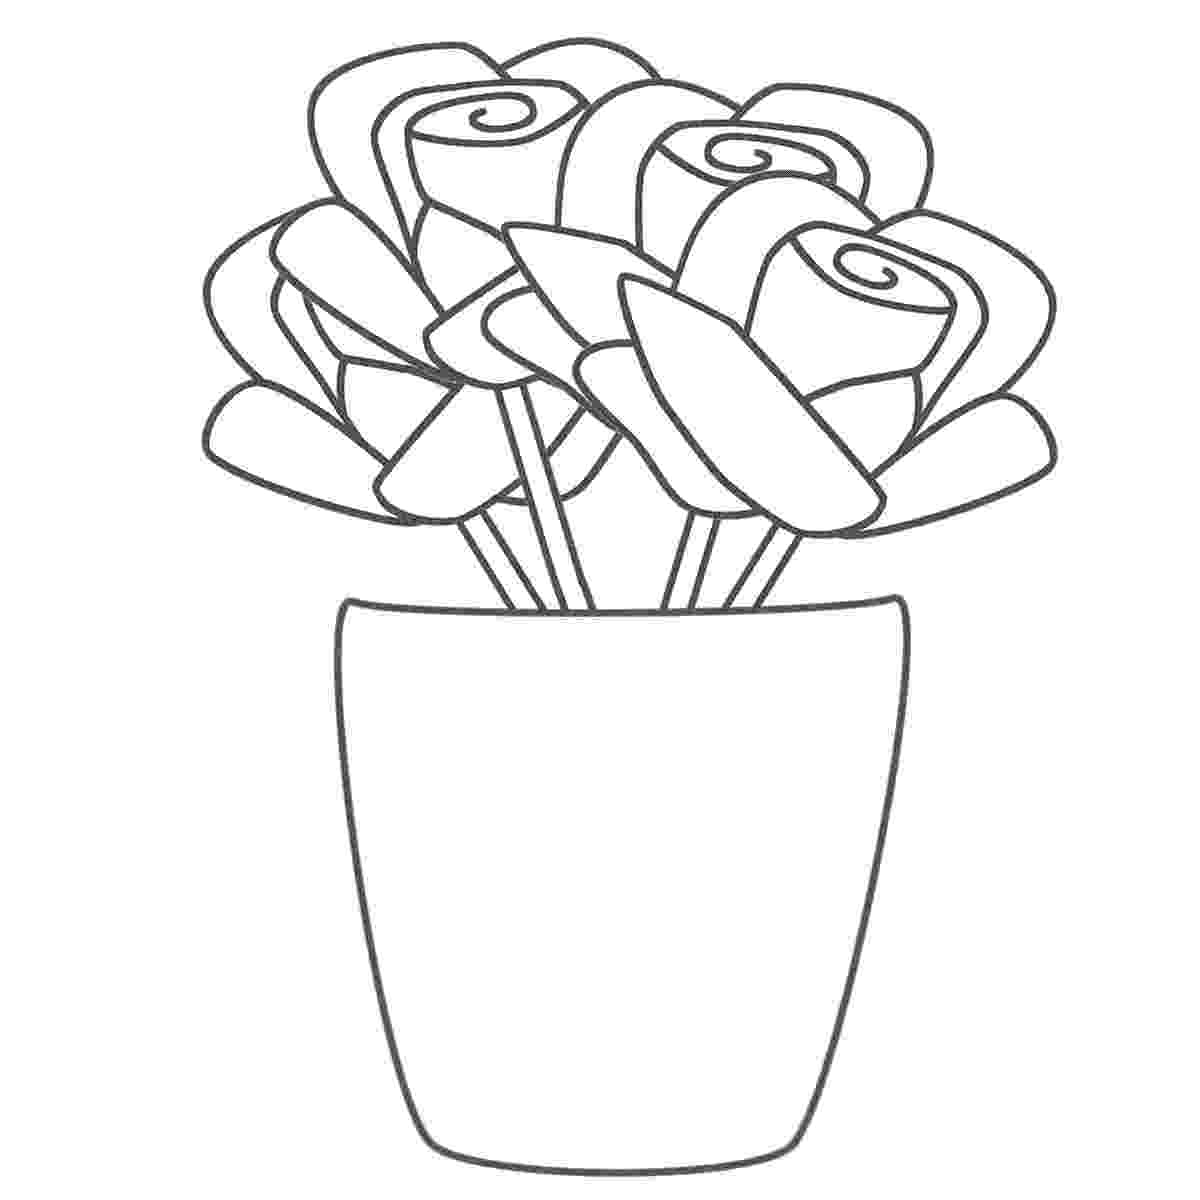 colouring pictures of roses roses coloring pages getcoloringpagescom of pictures roses colouring